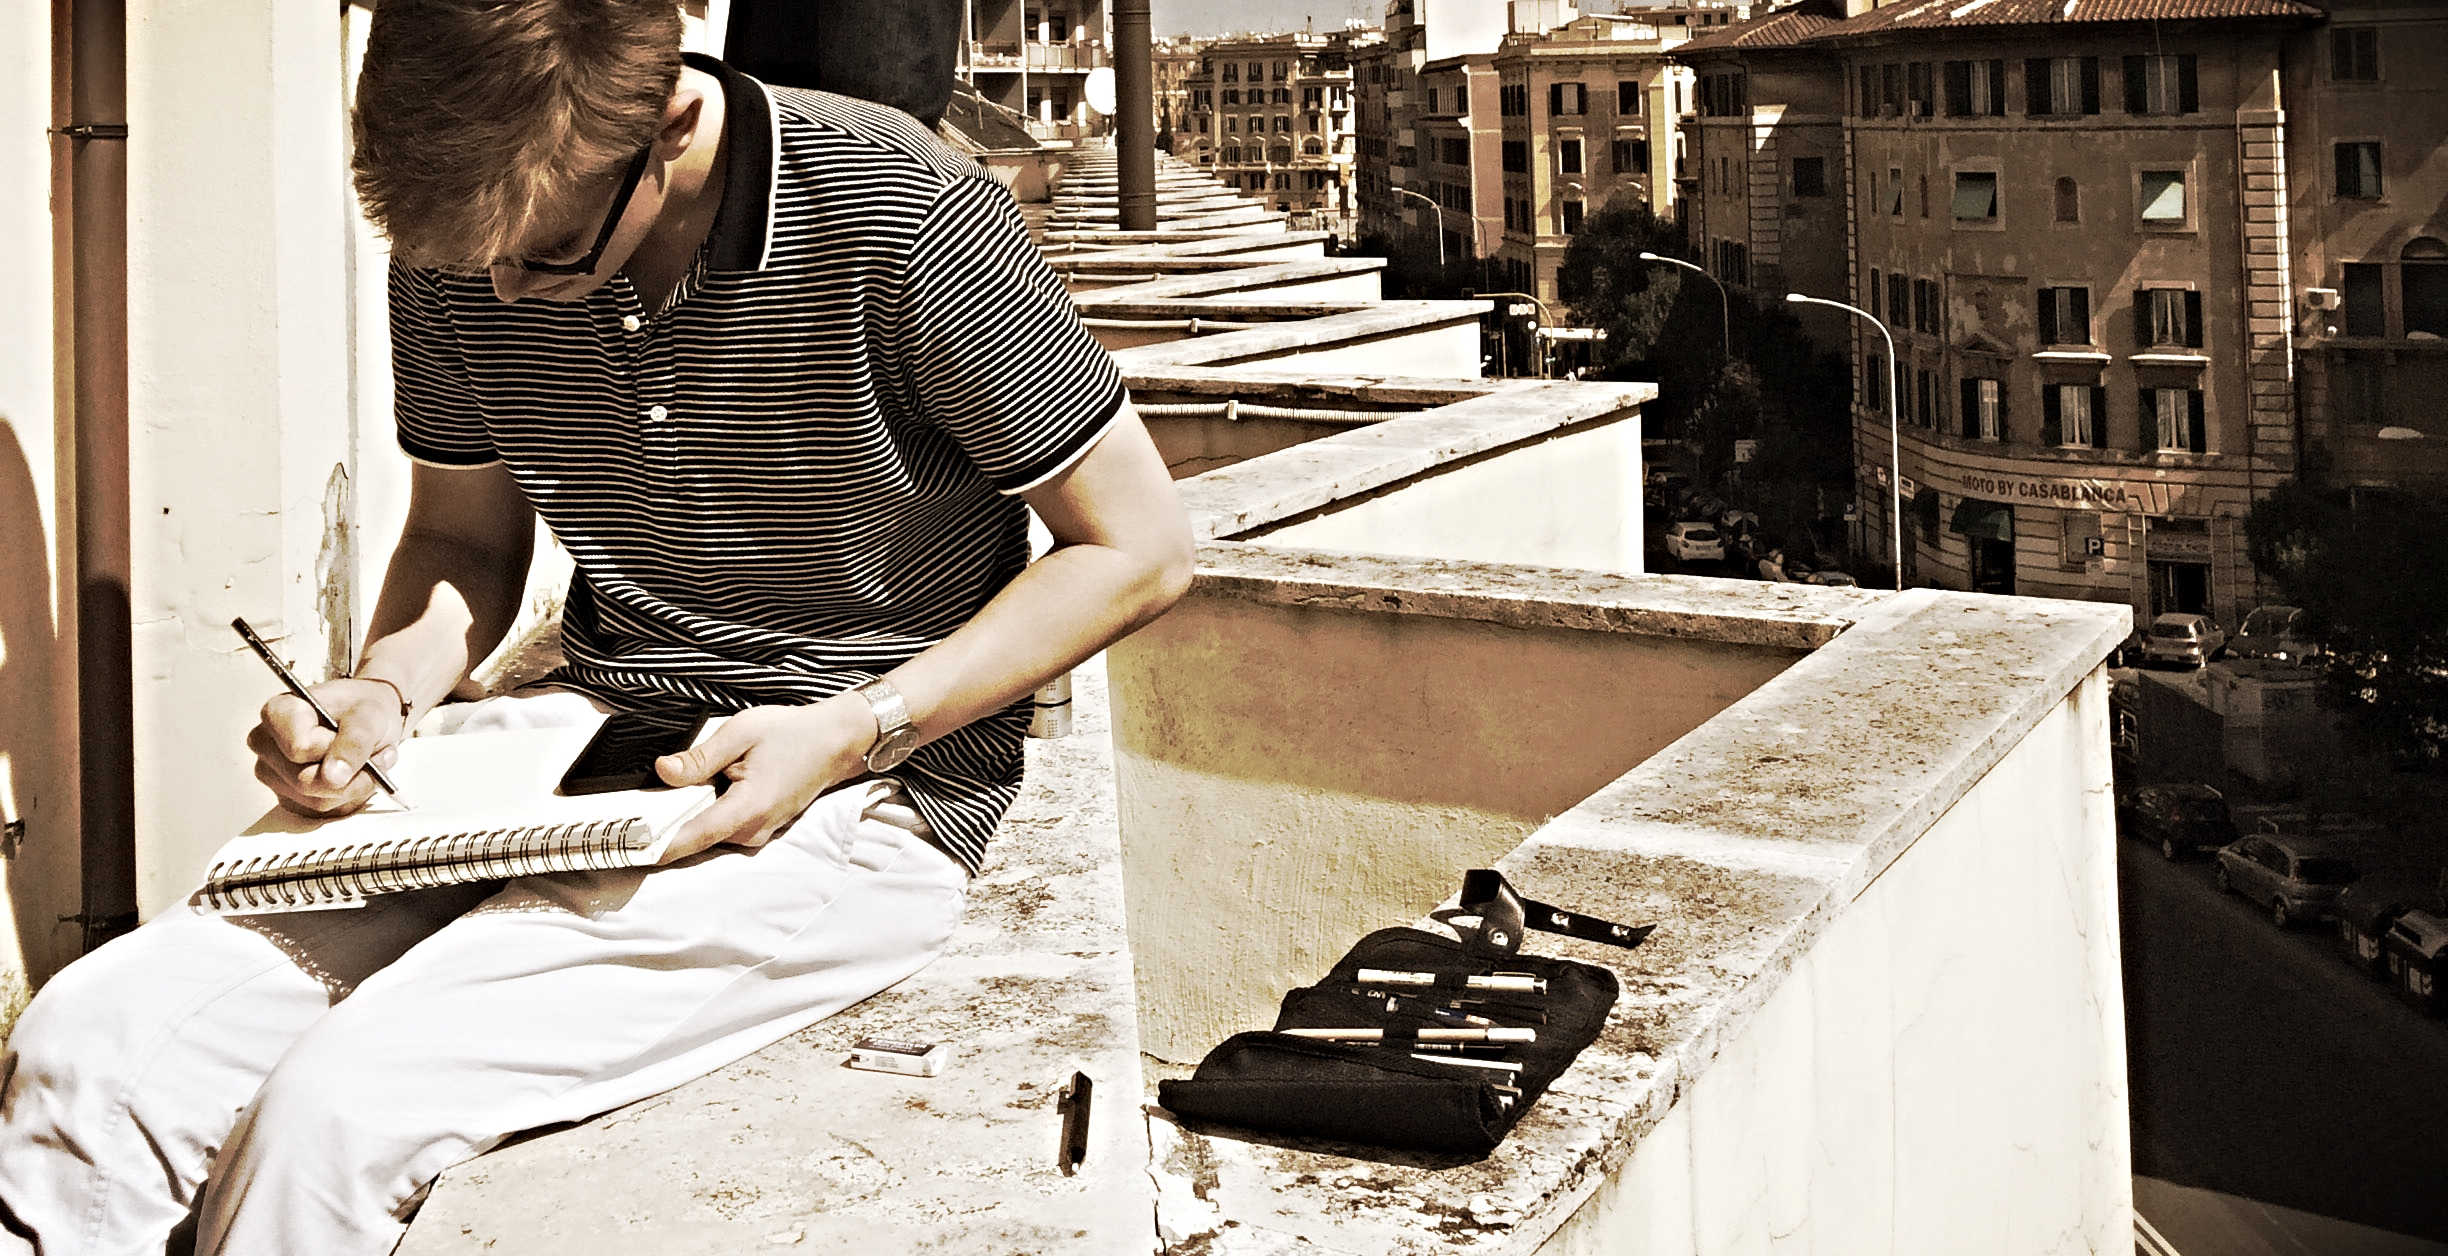 ROOFTOP SKETCHING IN ROME - SPRING 2015